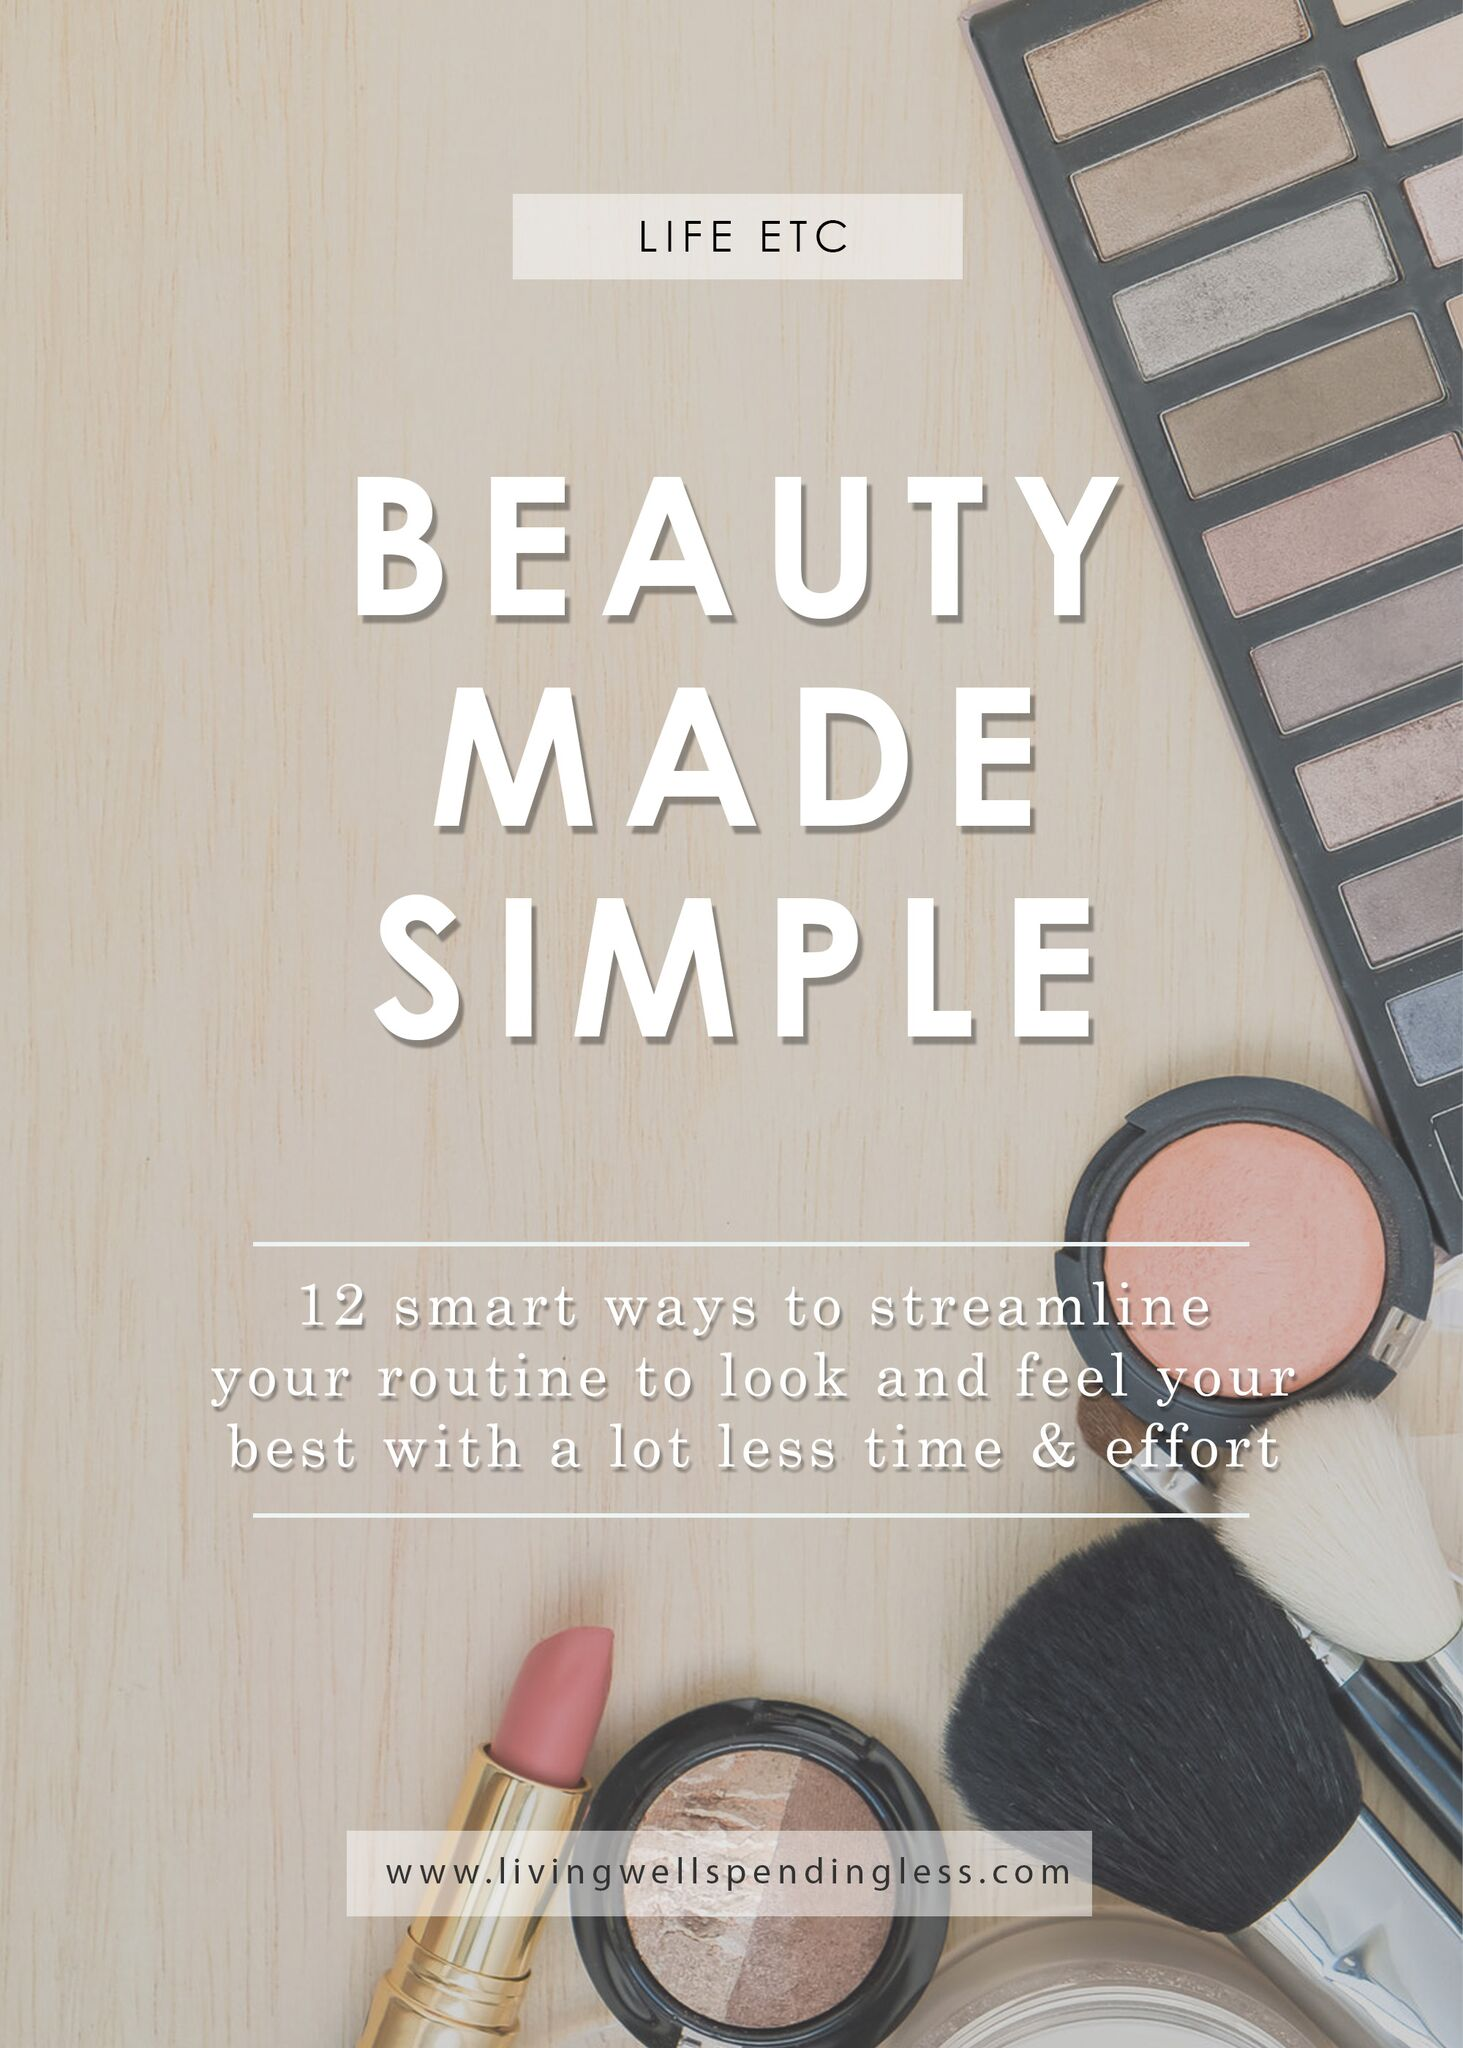 Beauty Made Simple   How Busy Moms Can Rock Fashion   Simple Fashion and Beauty Tips   Fashionable Tips for Busy Moms